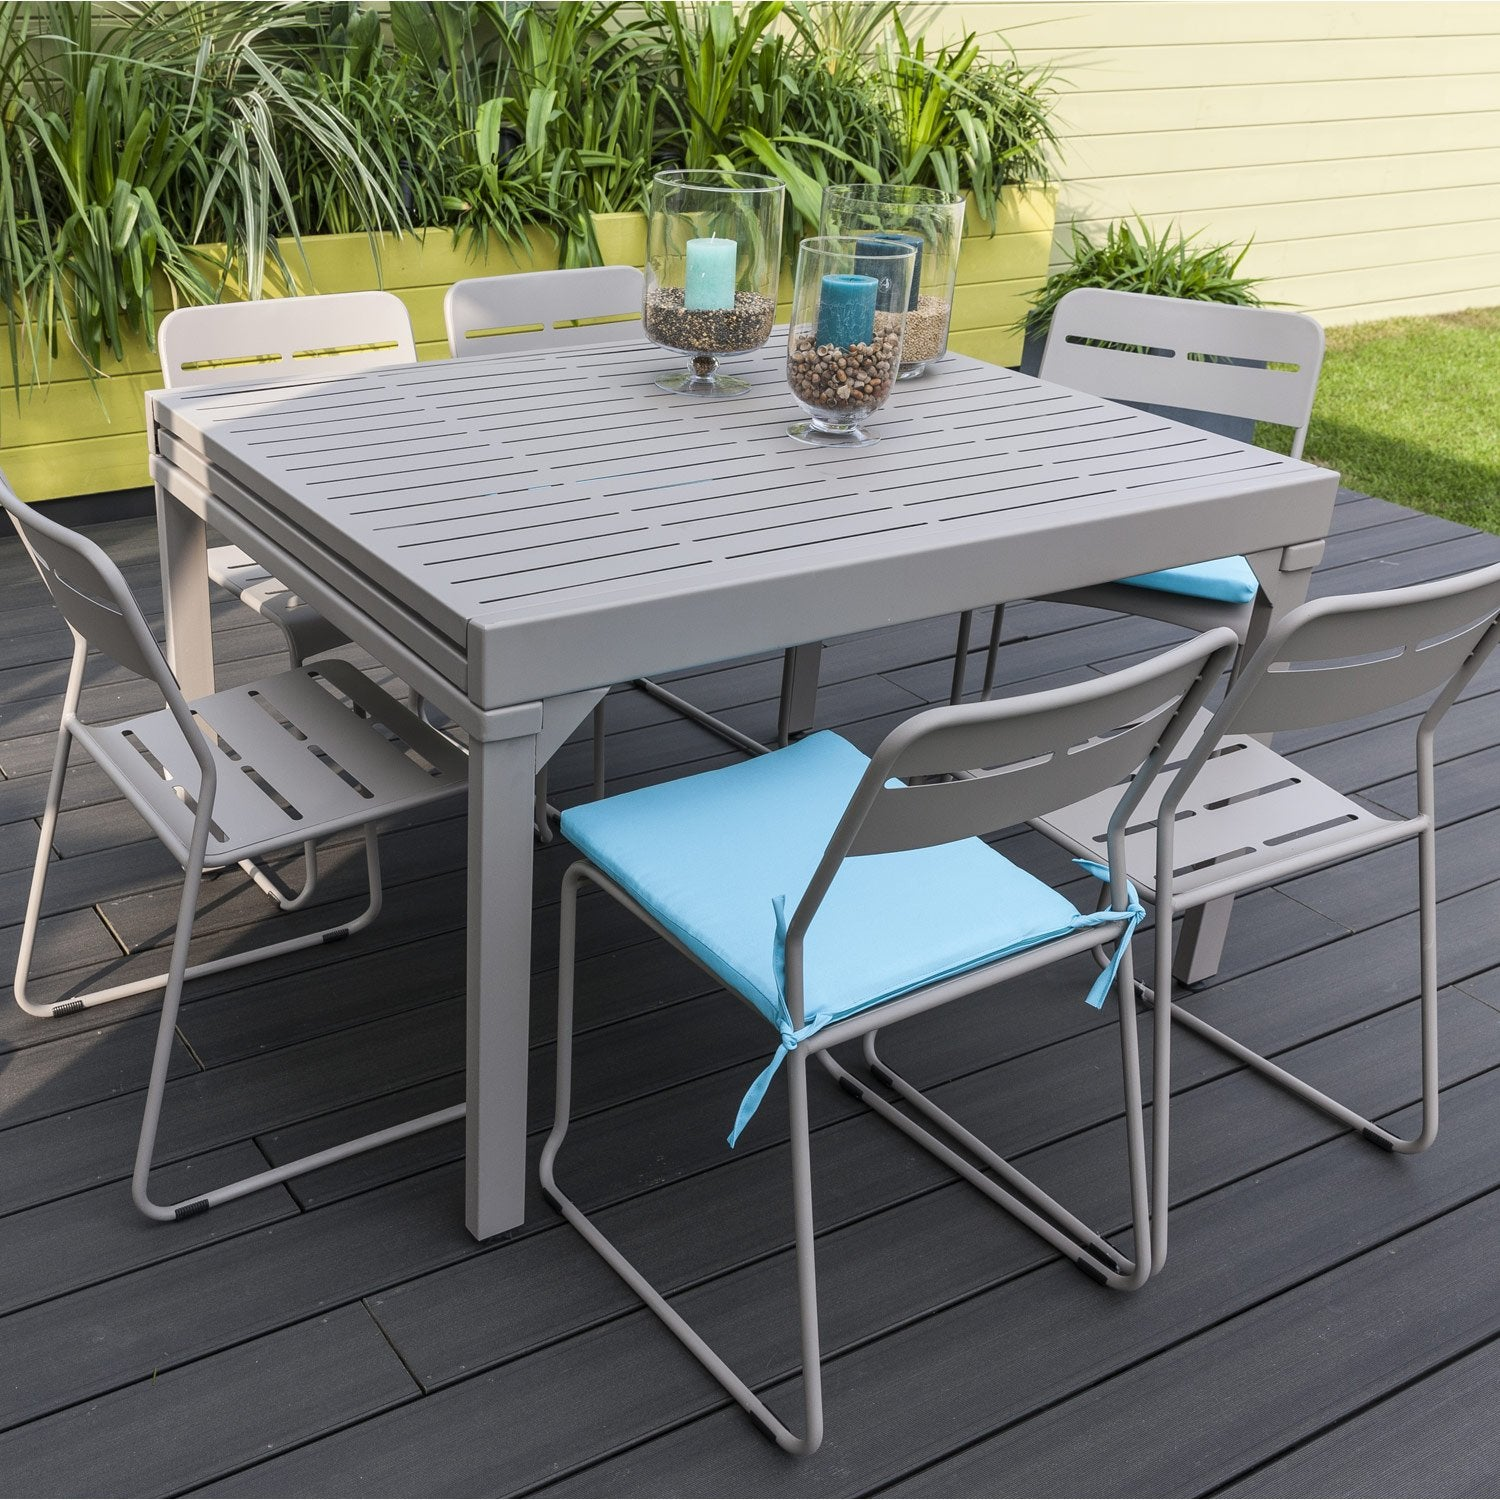 Table de repas halong taupe leroy merlin - Table rabattable leroy merlin ...